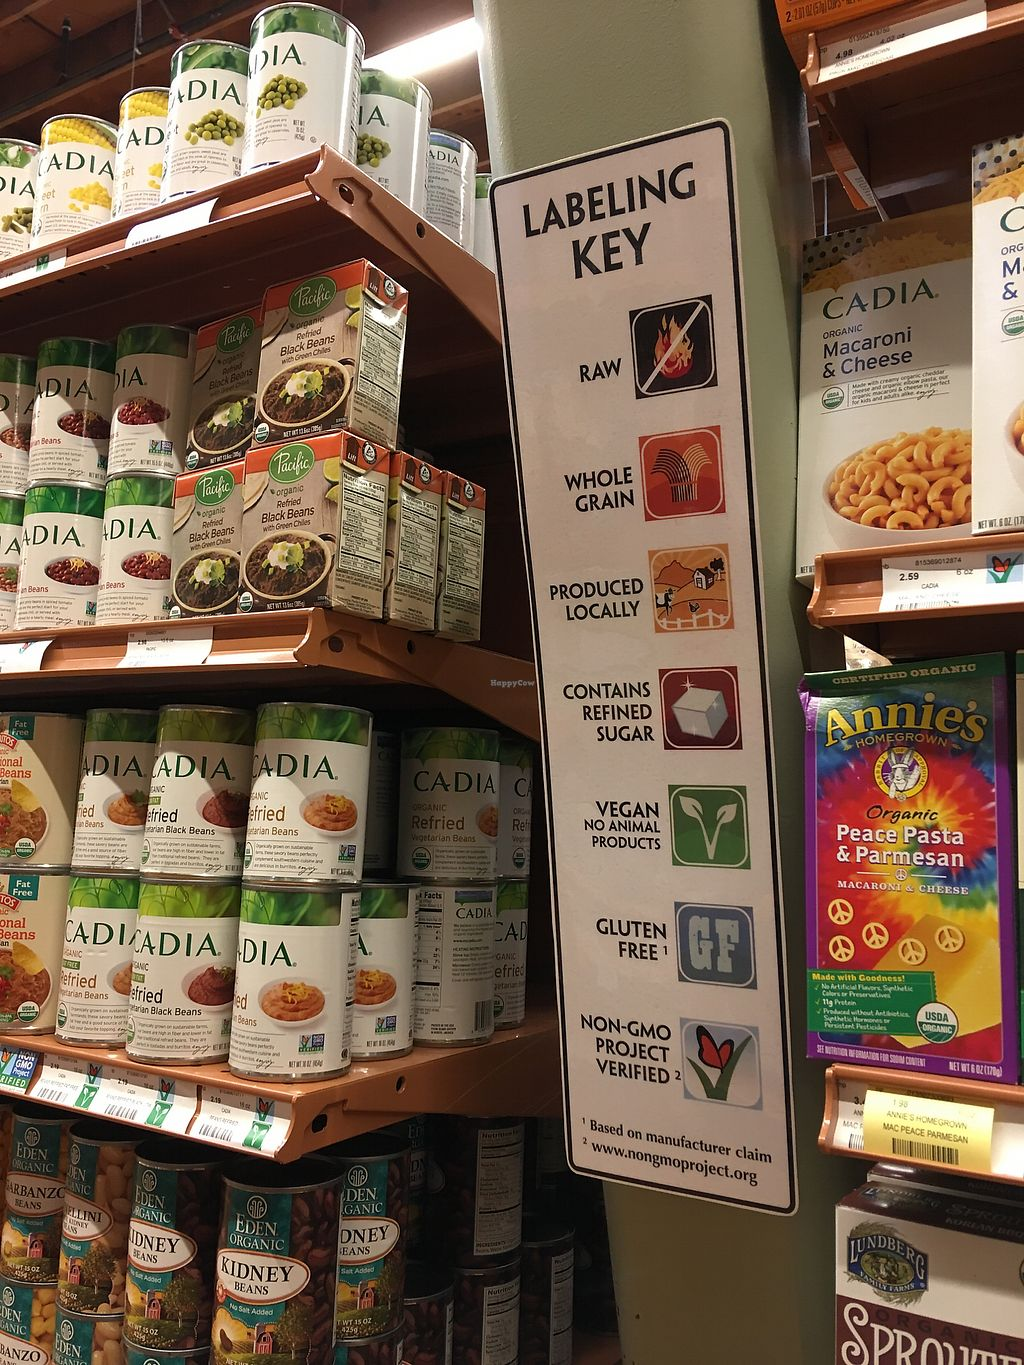 """Photo of Good Earth Natural Foods  by <a href=""""/members/profile/zwizki"""">zwizki</a> <br/>Labeling keys posted in grocery section and by the pastry case.  <br/> March 10, 2018  - <a href='/contact/abuse/image/69980/368635'>Report</a>"""